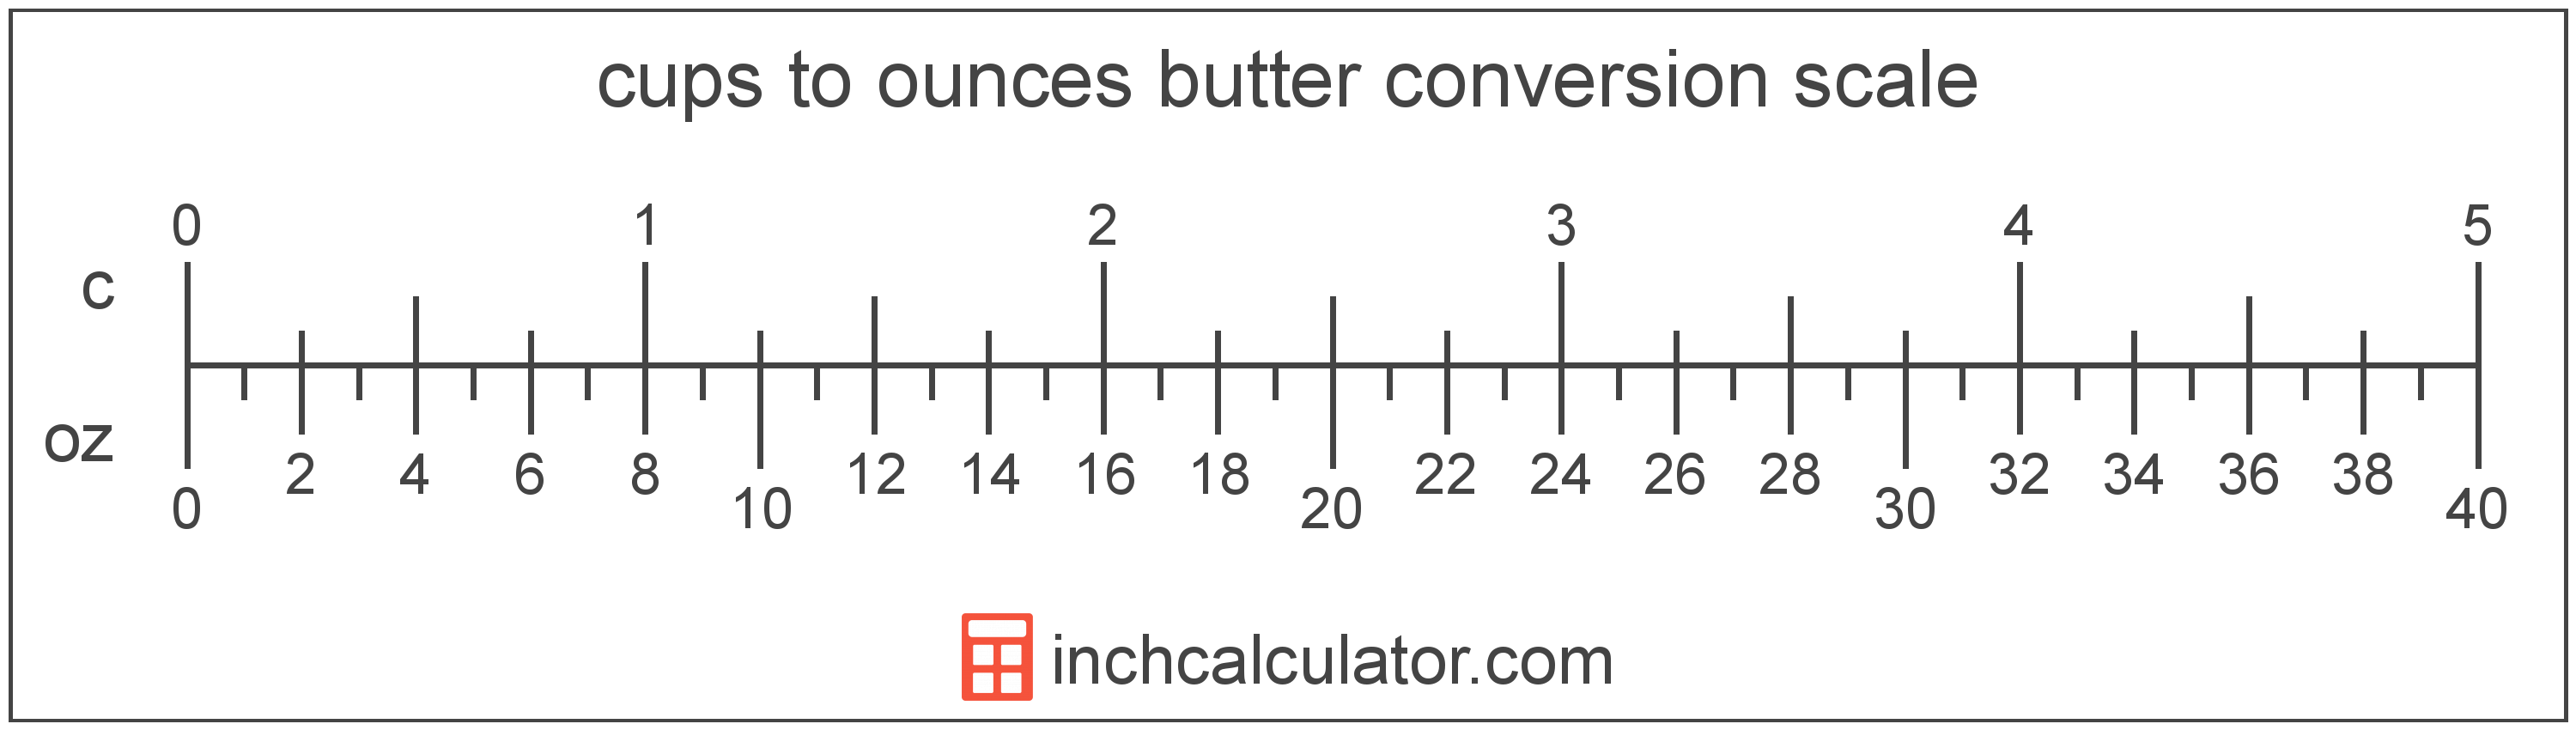 conversion scale showing cups and equivalent ounces butter values